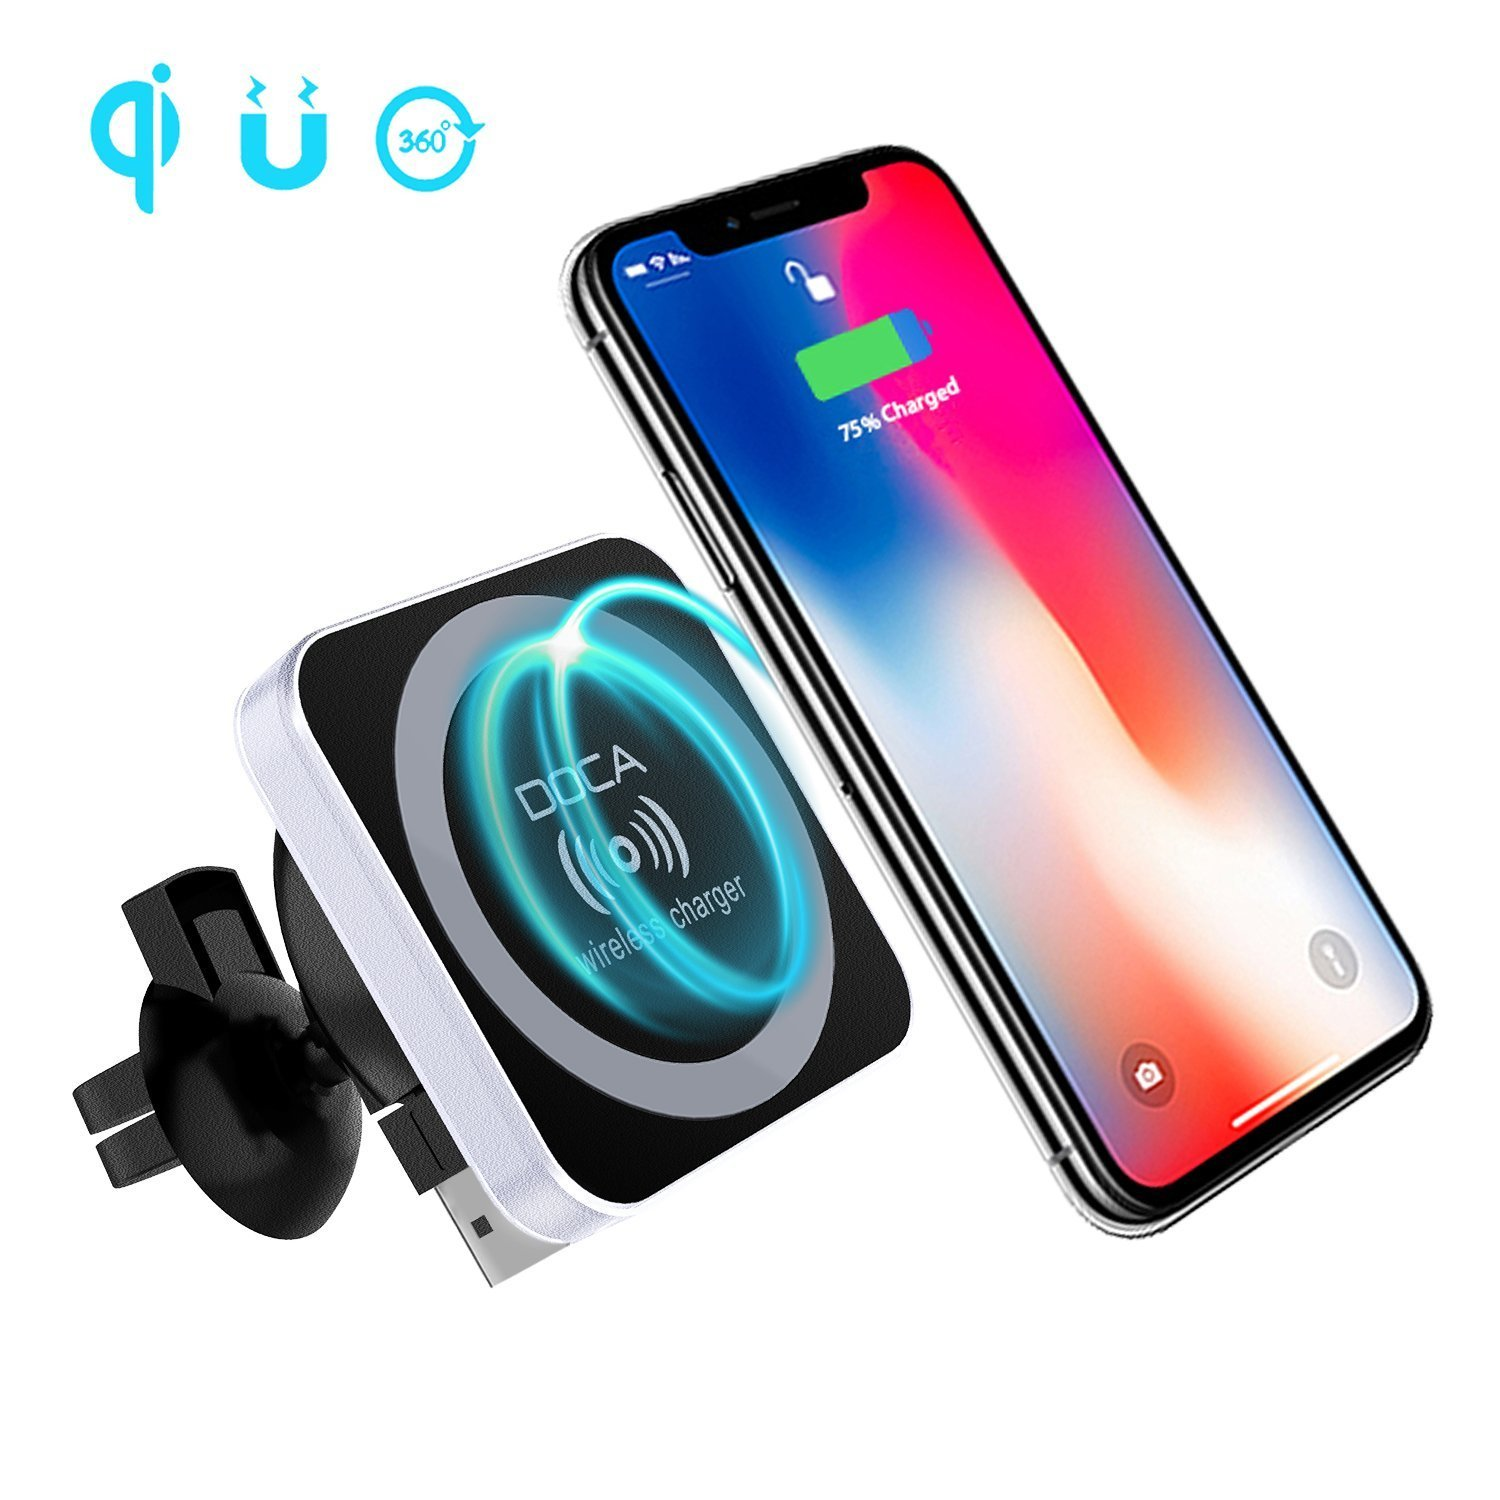 QI Wireless Car Charger, DOCA Magnetic QI Standard Car Charger Air Vent Phone Mount Holder for iPhone X iPhone 8/8 Plus Galaxy Note 8 S8/S8 Plus S7 Edge and Any QI Enabled Phones